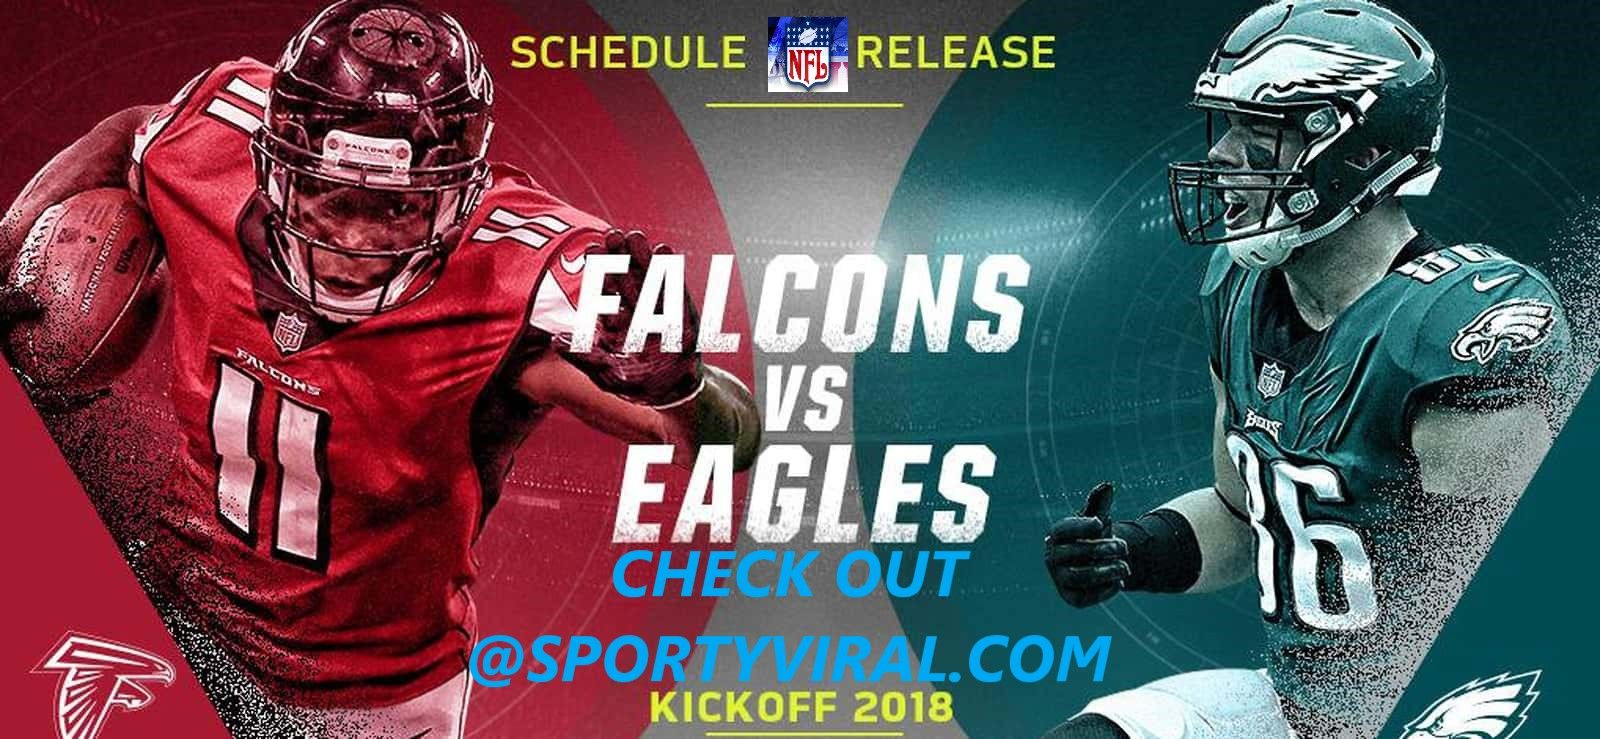 The 2018 19 Nfl Season Begins September 6 And Runs Until February 3 2019 When Super Bowl 53 Will Be Played In Atlanta Check Ou Nfl Nfl Season Nfl Players